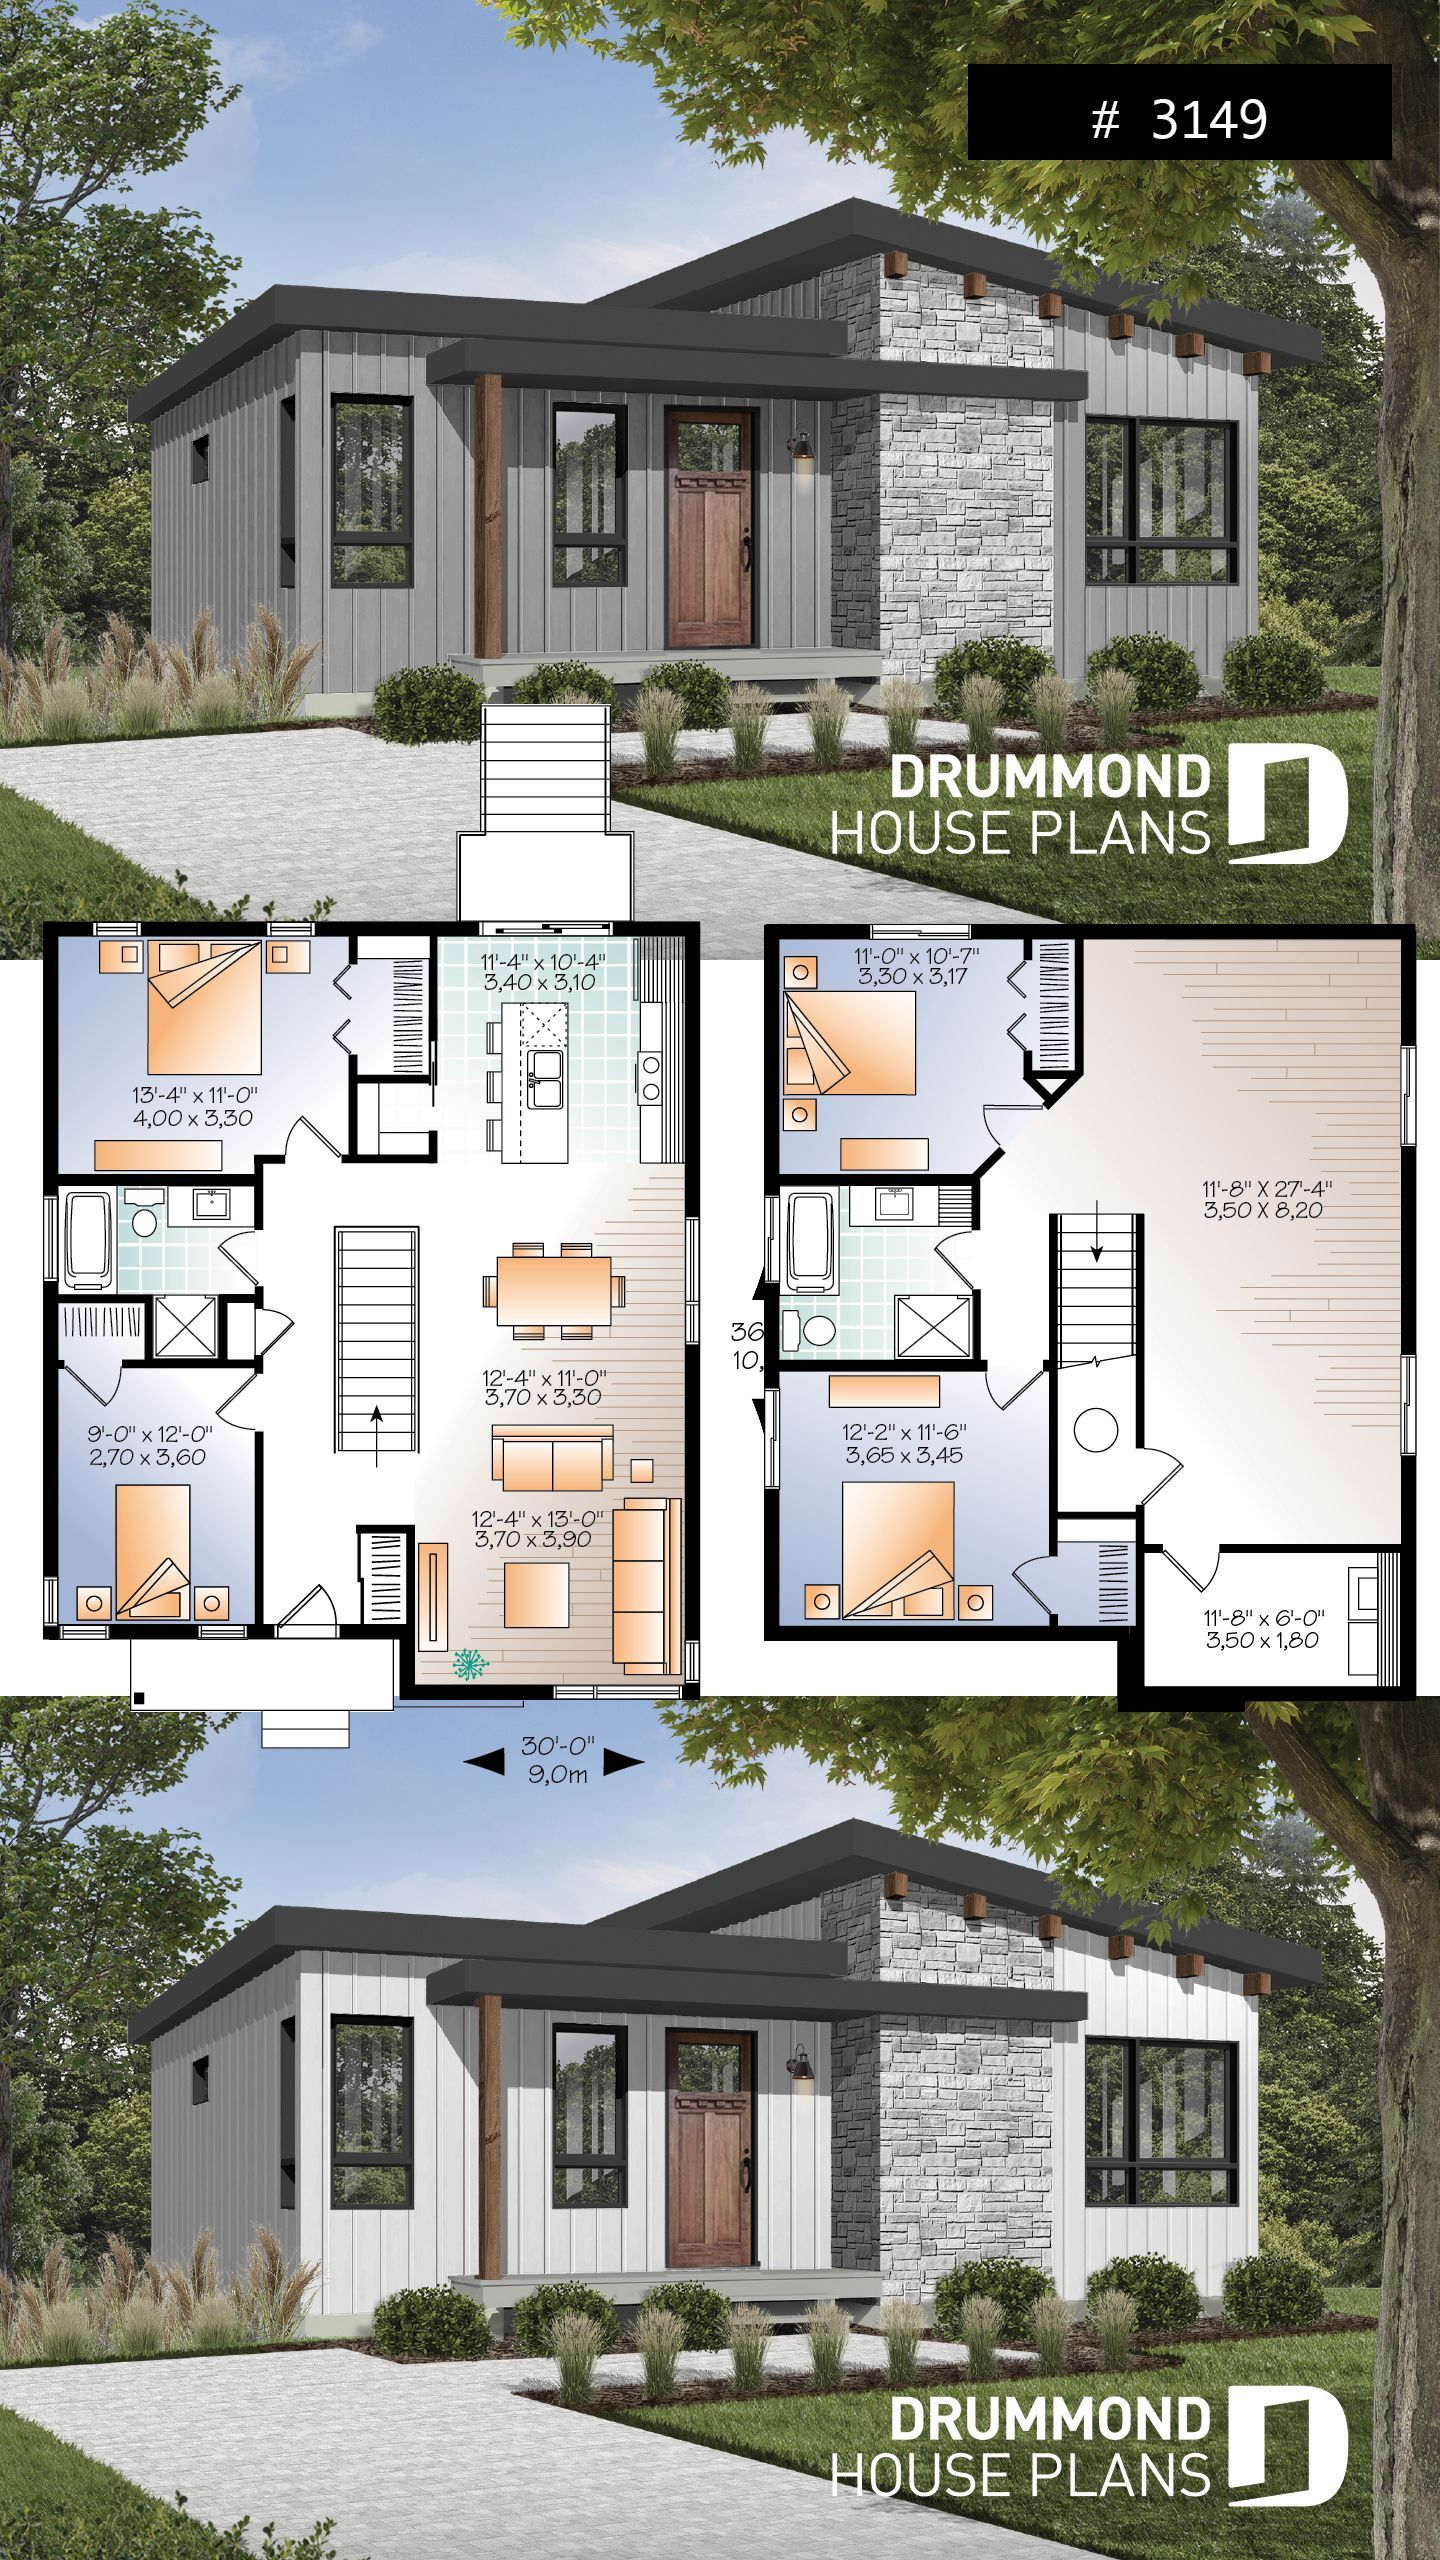 One Story House Plans With Finished Basement 2020 Haus Plane Haus Modern